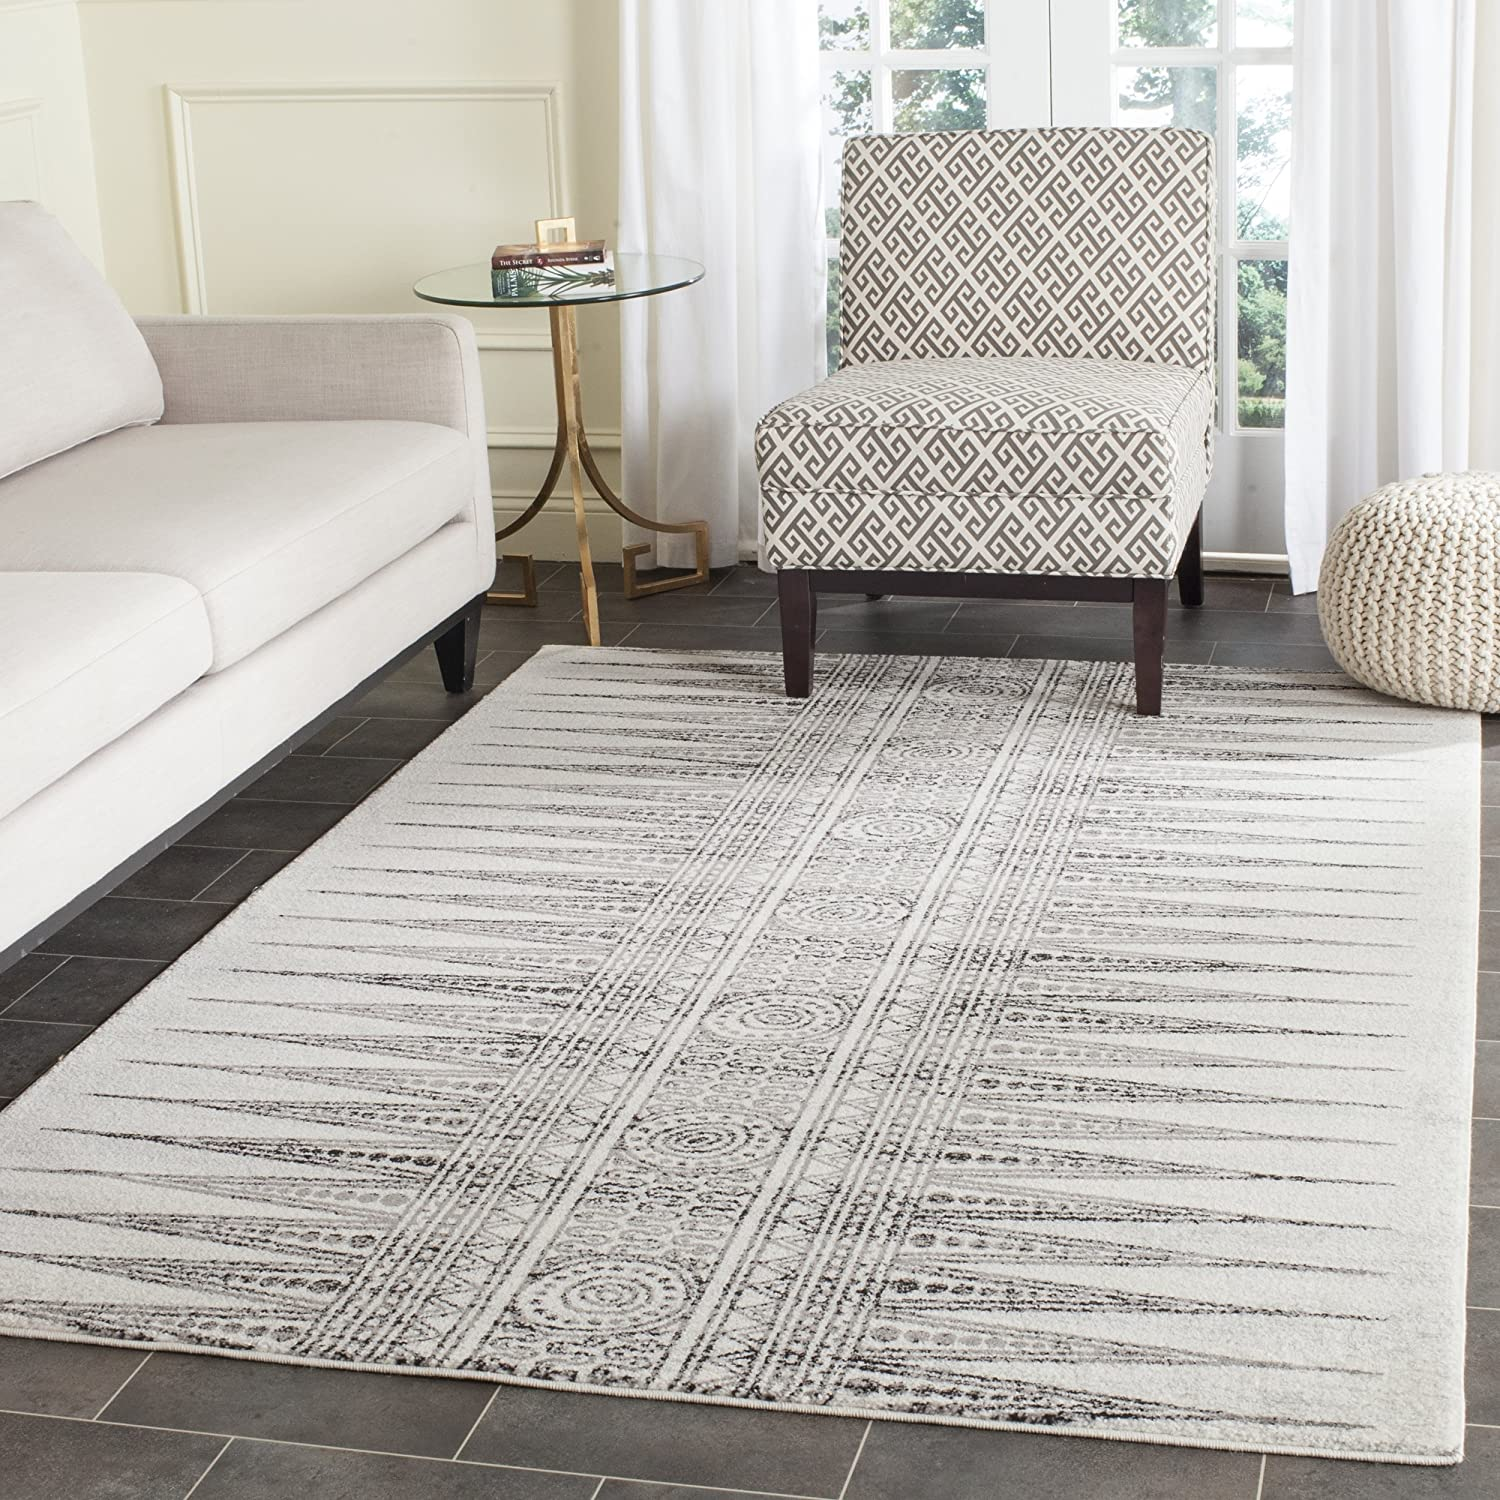 6x9 Rugs Cheap Area Rugs 9x12 6x9 Area Rugs Square Rugs